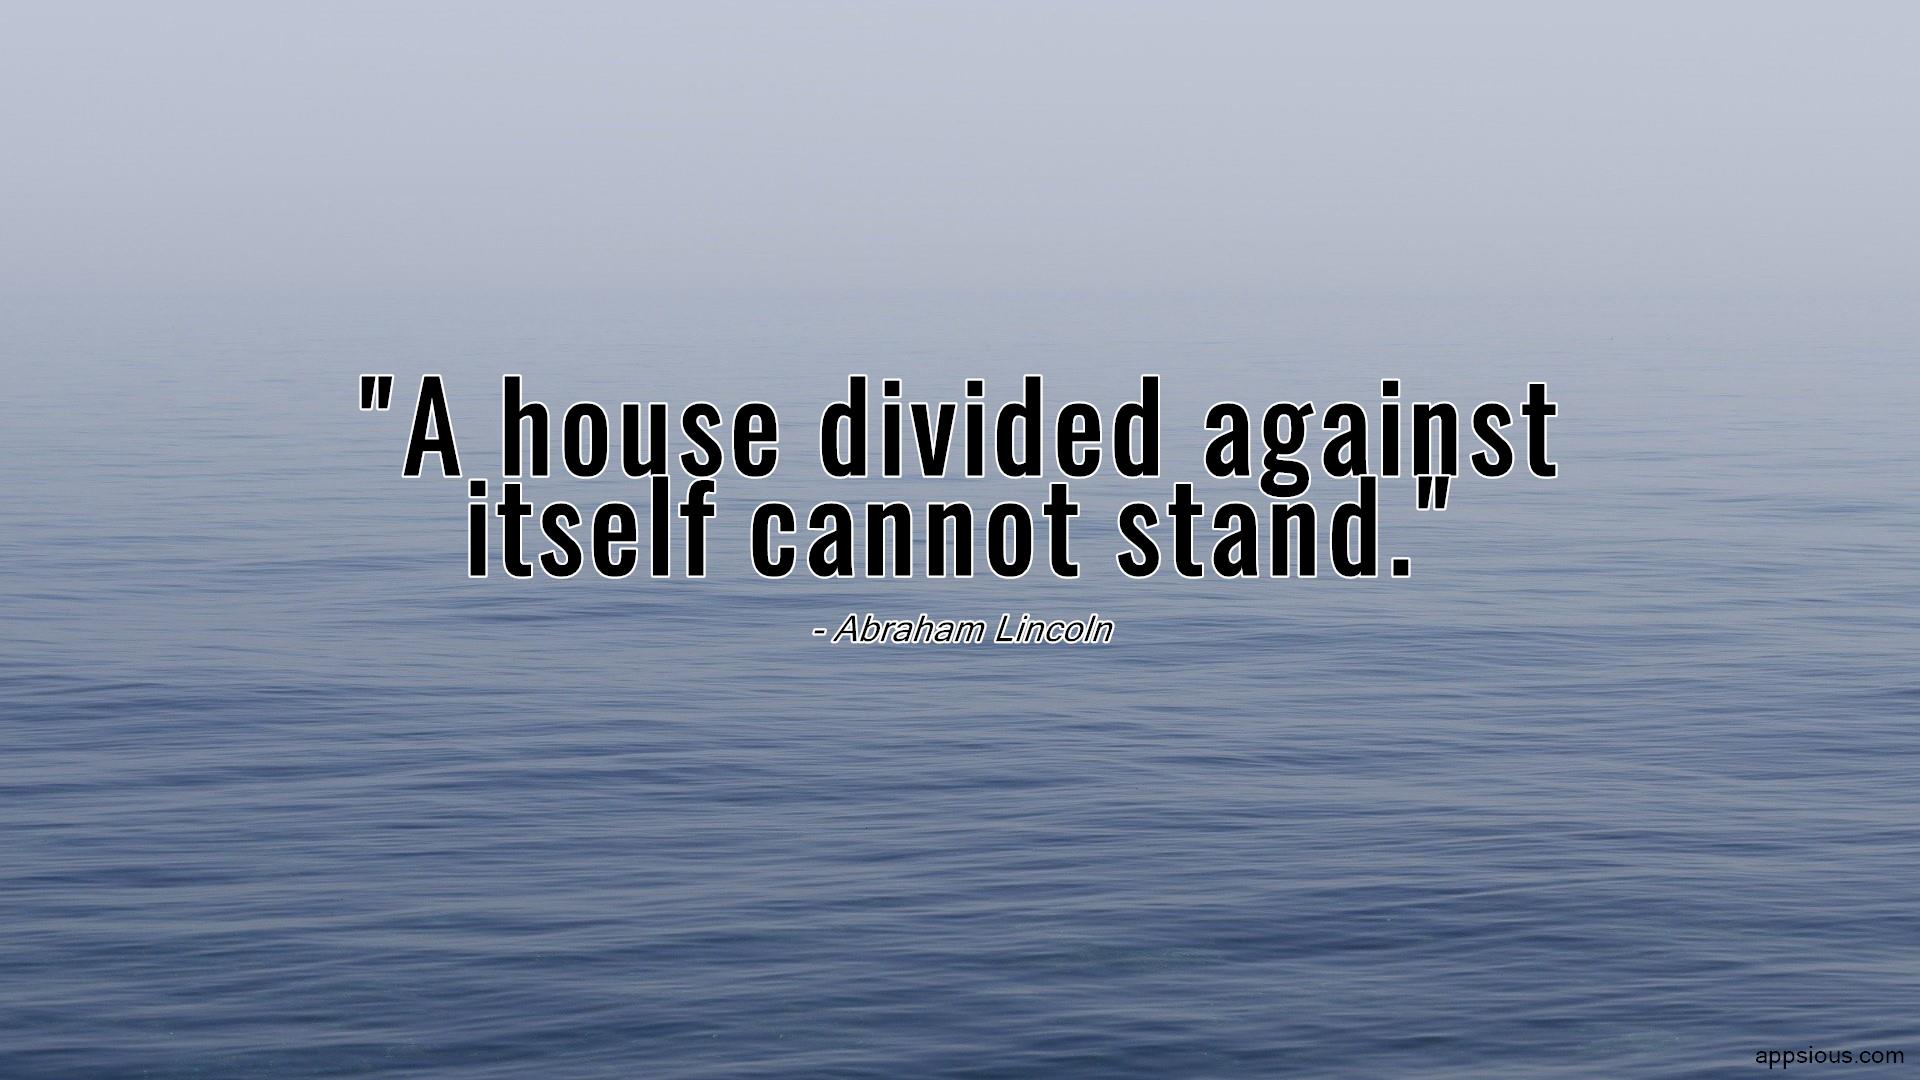 A house divided against itself cannot stand.